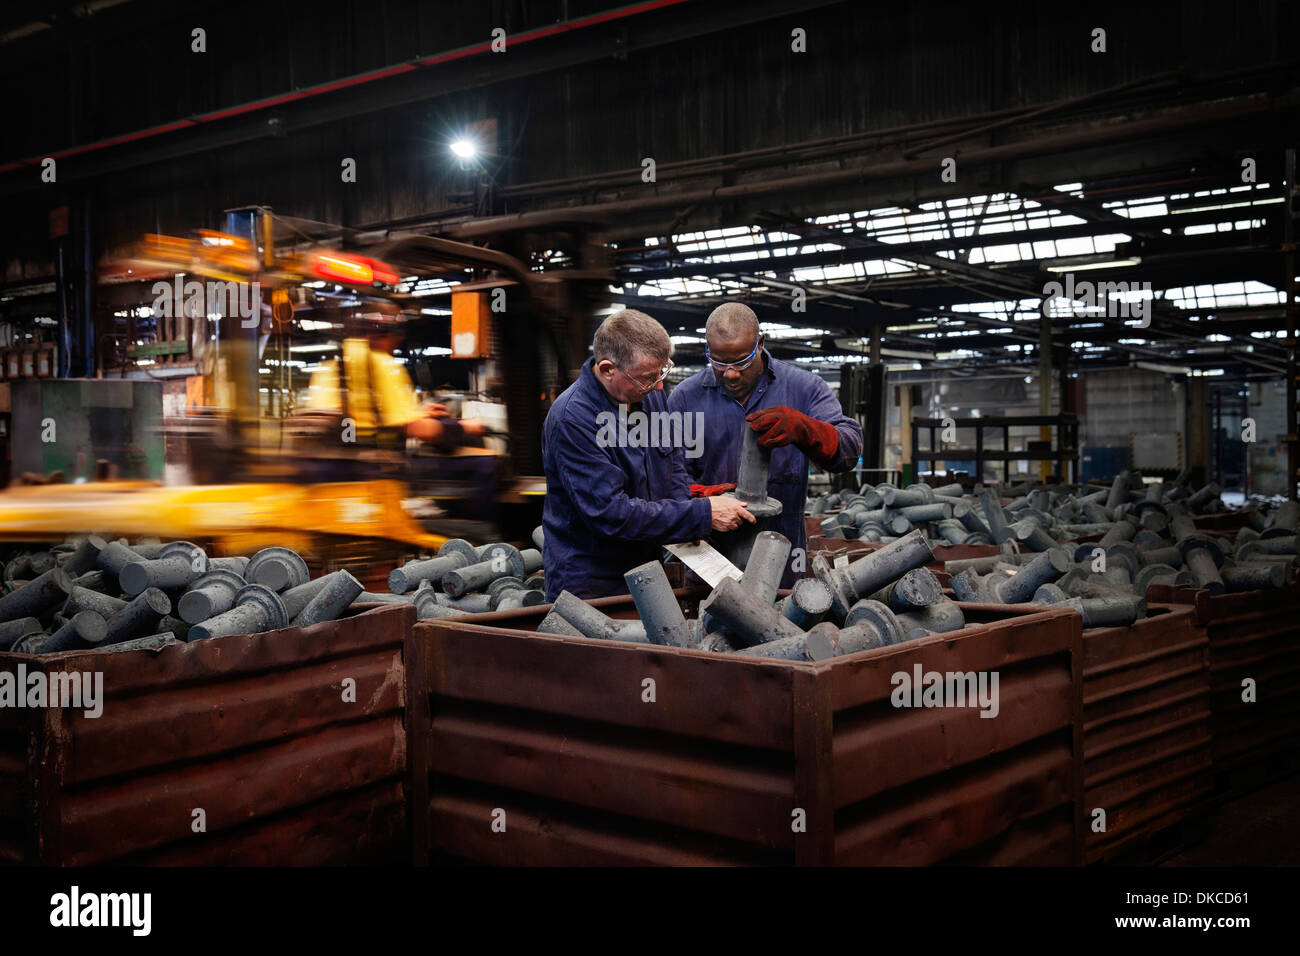 Checking dimensions on crank shafts in warehouse area, fork lift truck unloads a new steel container of product in background - Stock Image